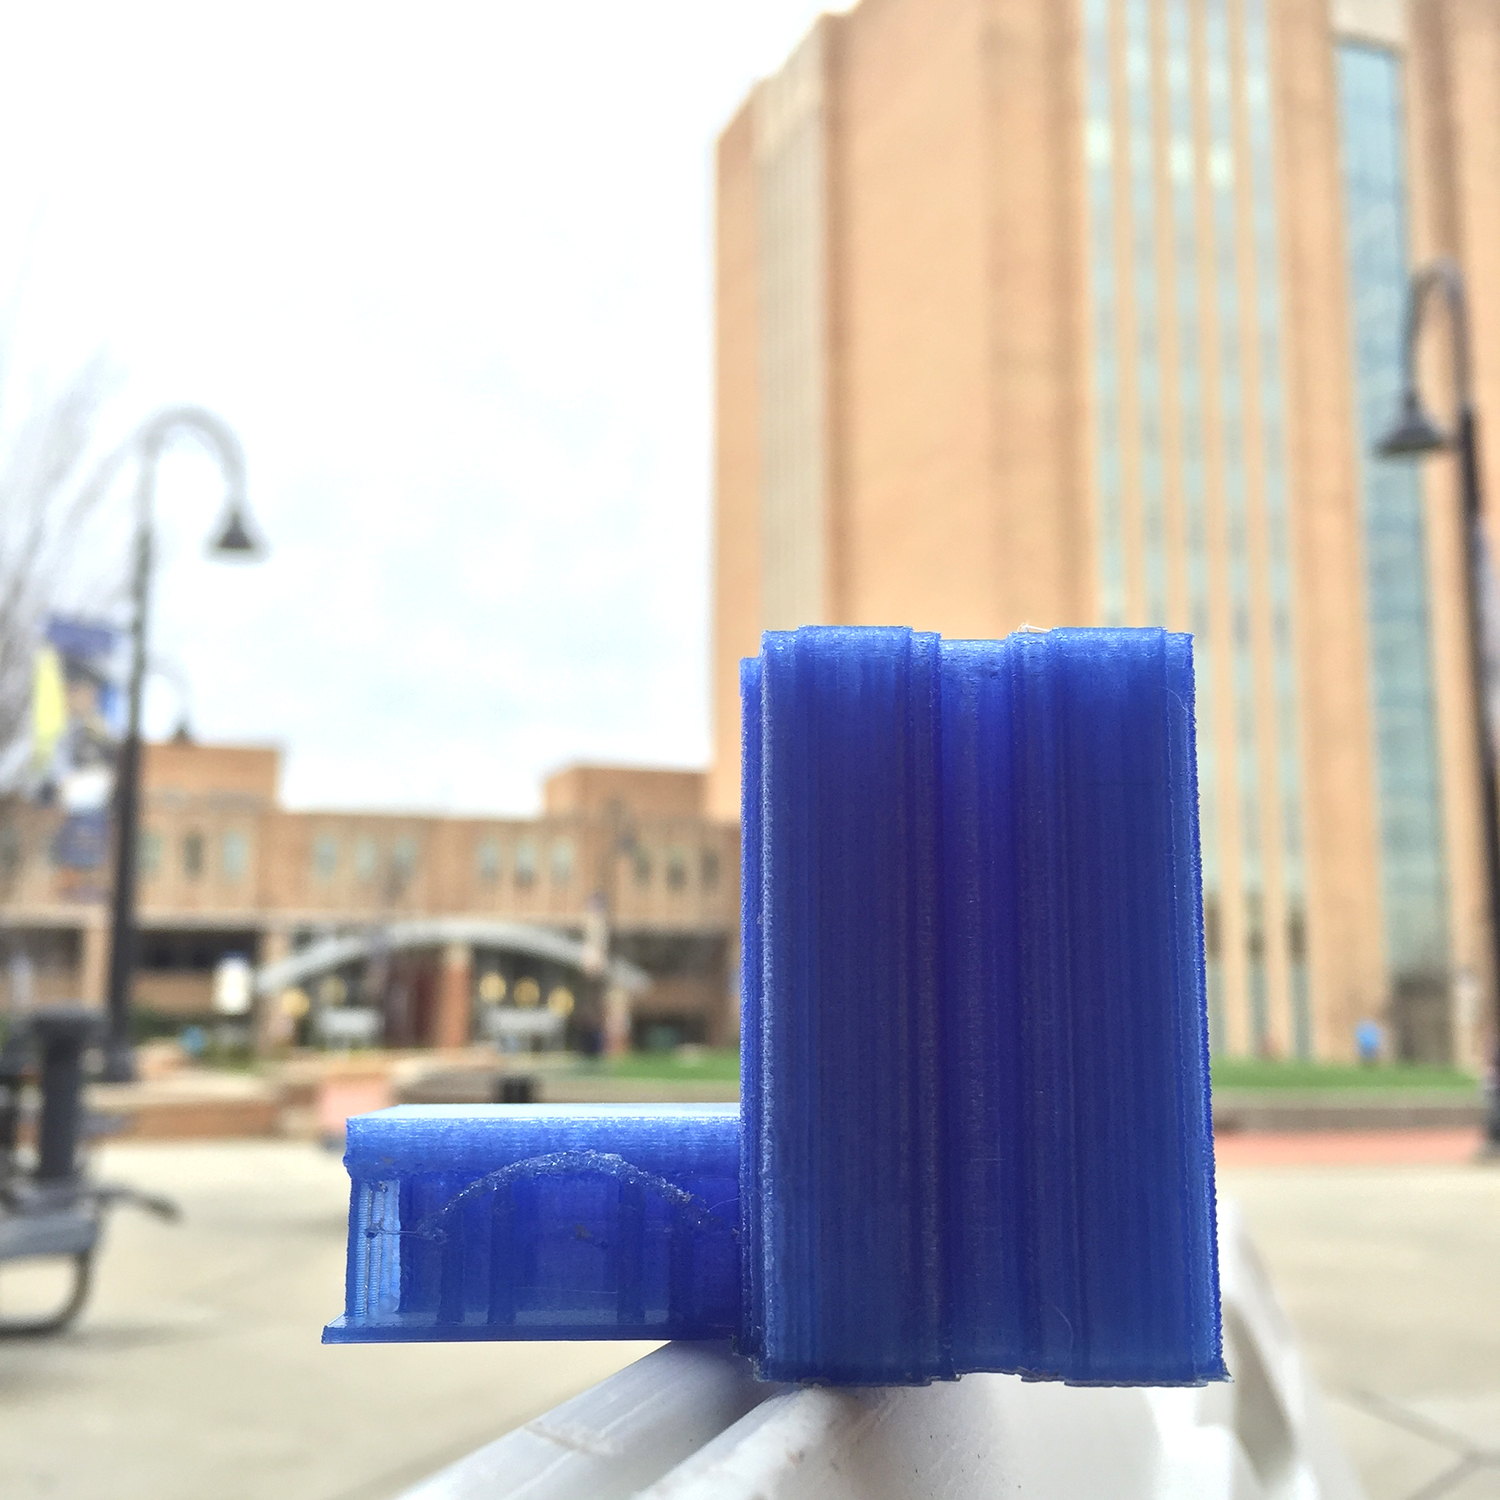 a 3D printed version of the Kent State University Library is on display in front of the building itself